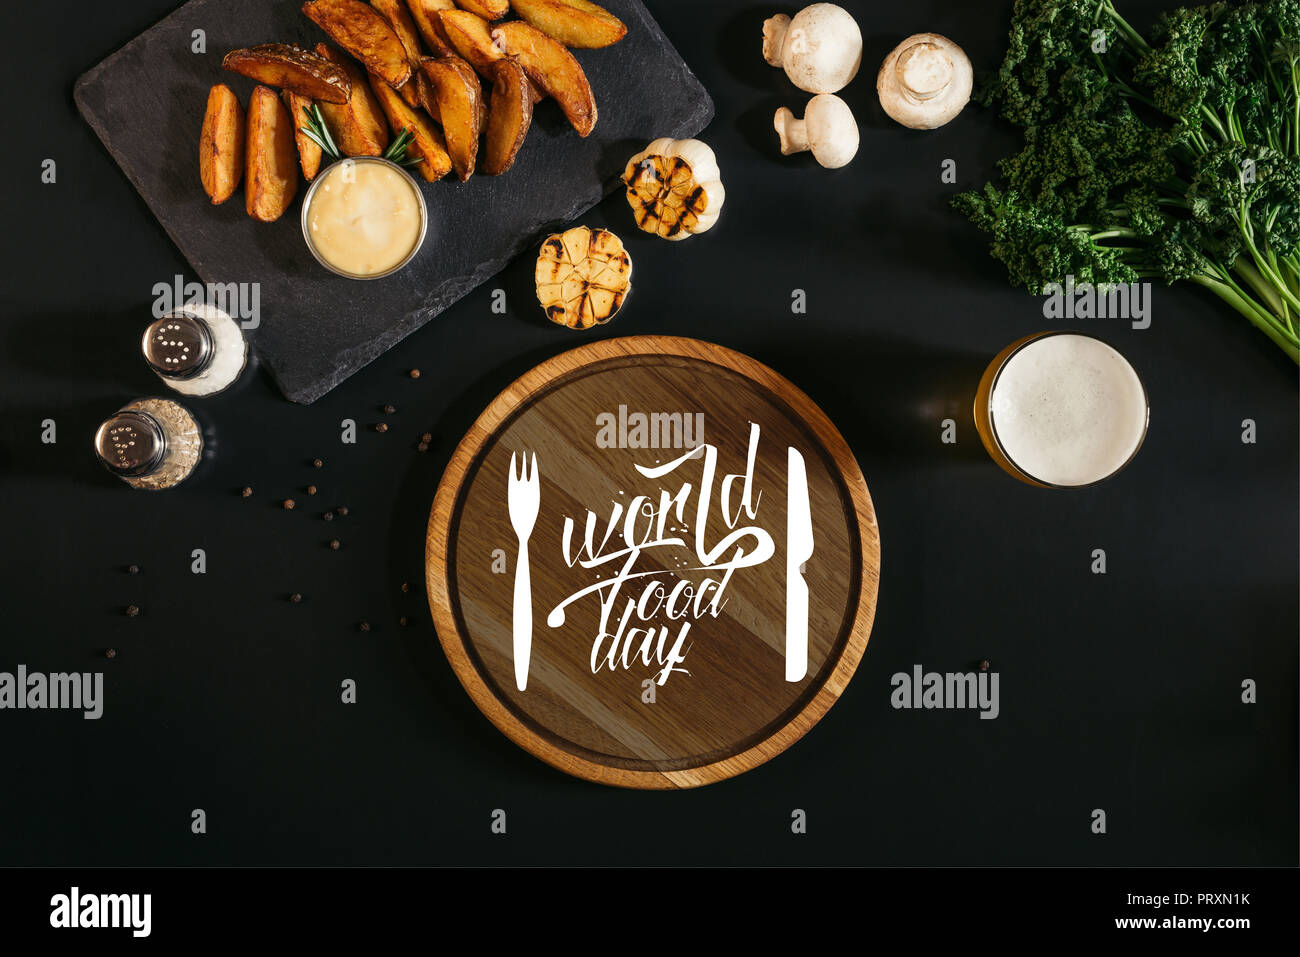 wooden board  with 'world food day' lettering with fork and knife, glass of beer and baked potatoes with sauce and spices on black - Stock Image